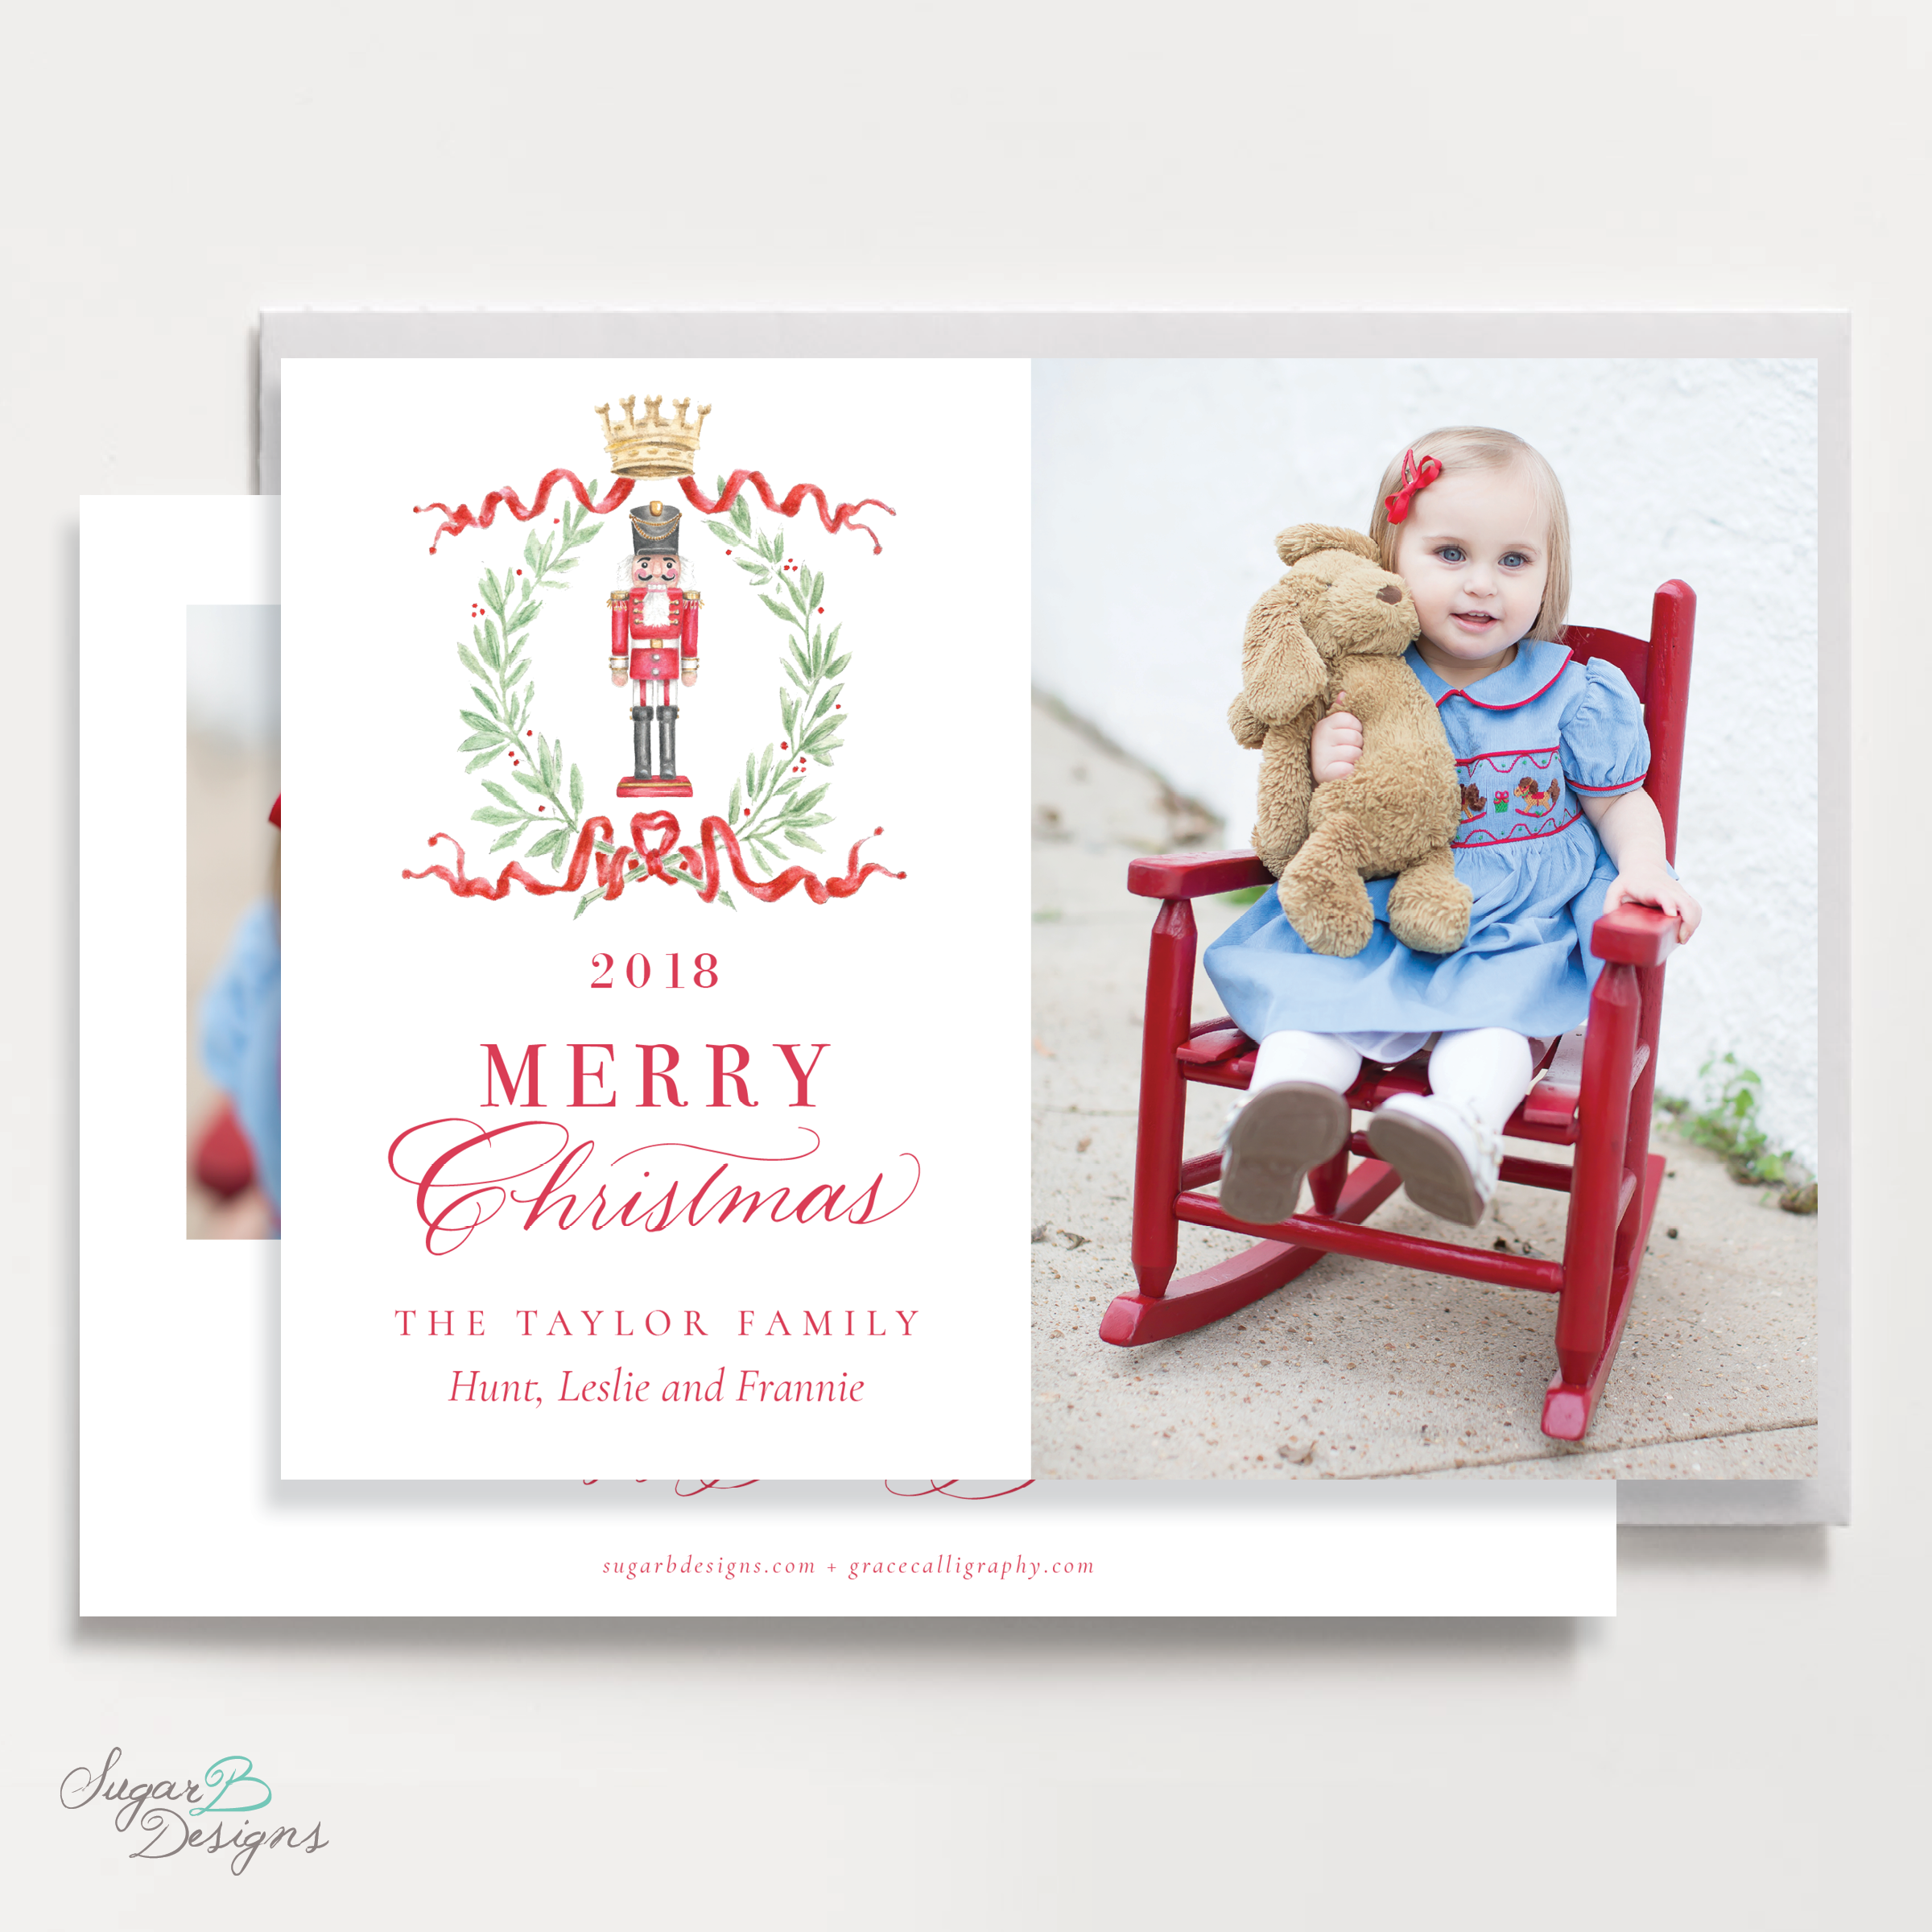 Nutcracker Royal Wreath Landscape front + back Christmas Card by Sugar B Designs.png